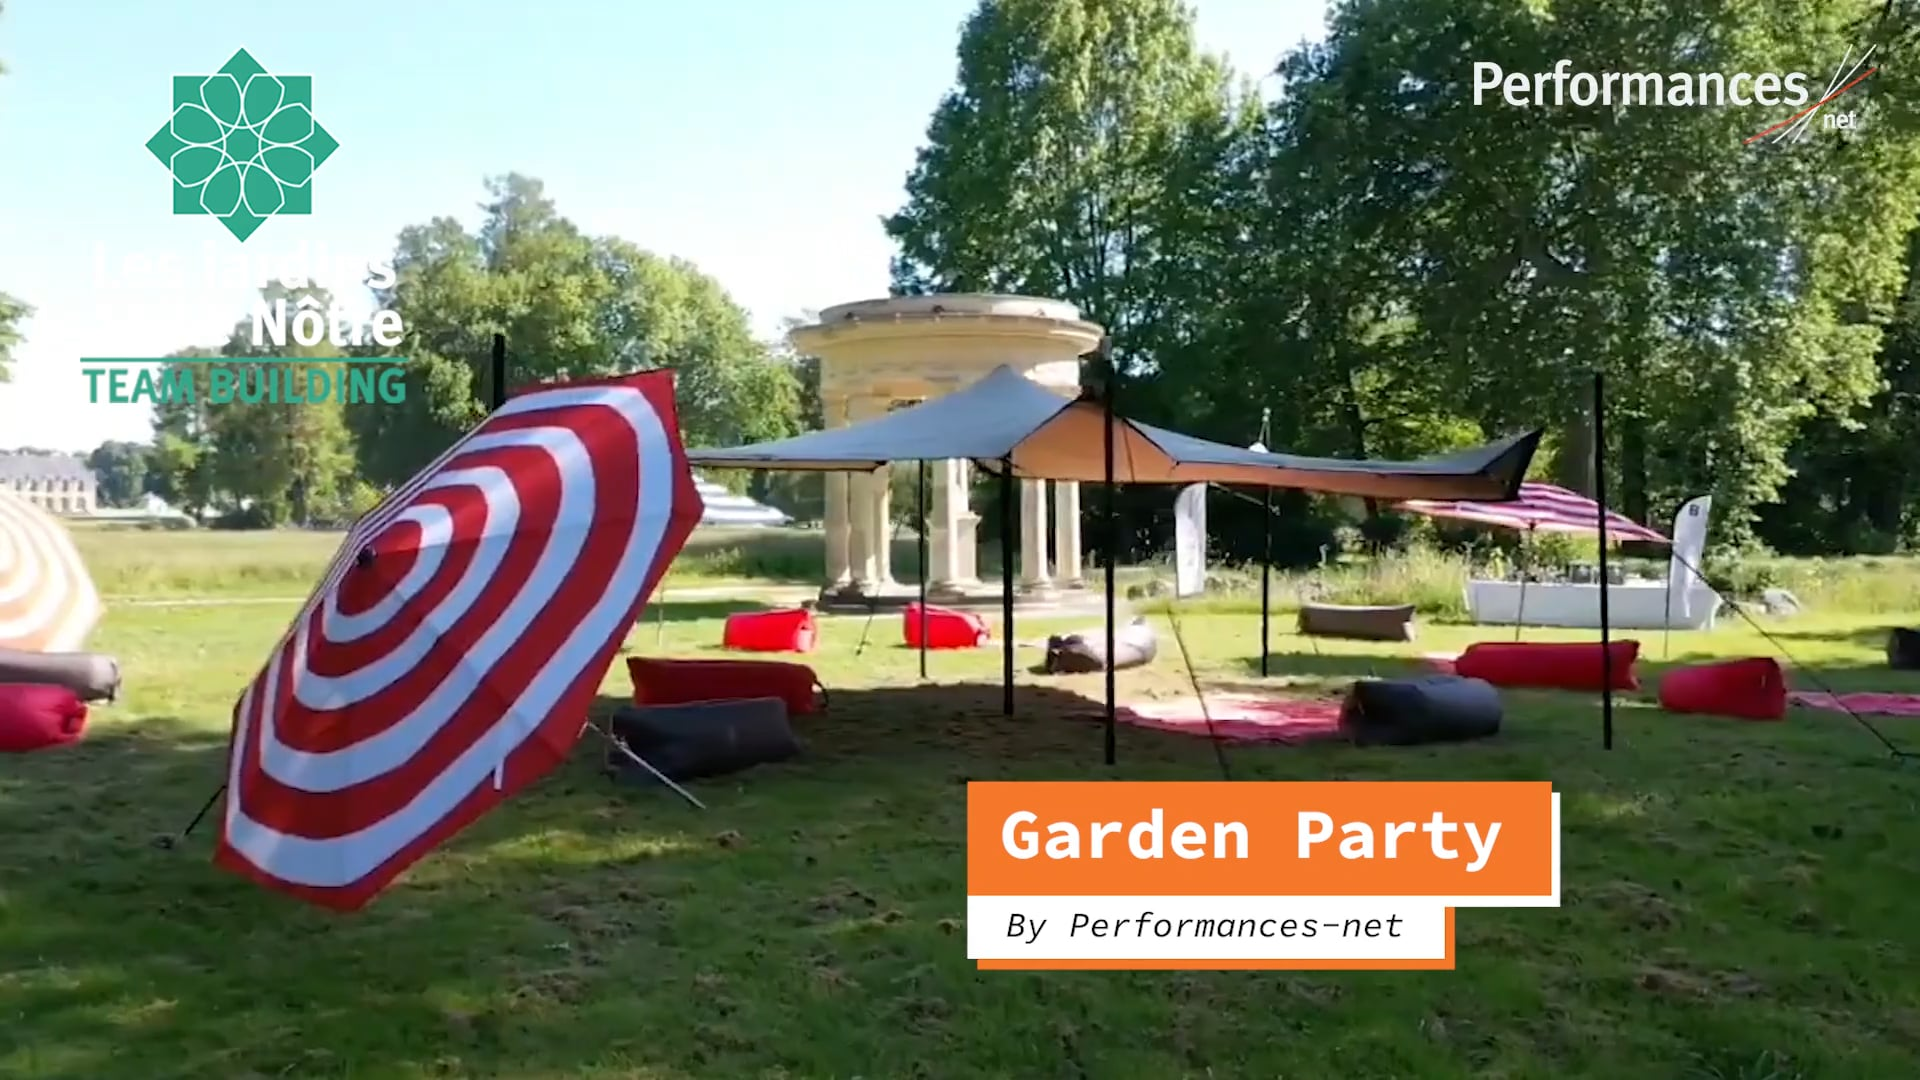 Garden Party by Performances-net